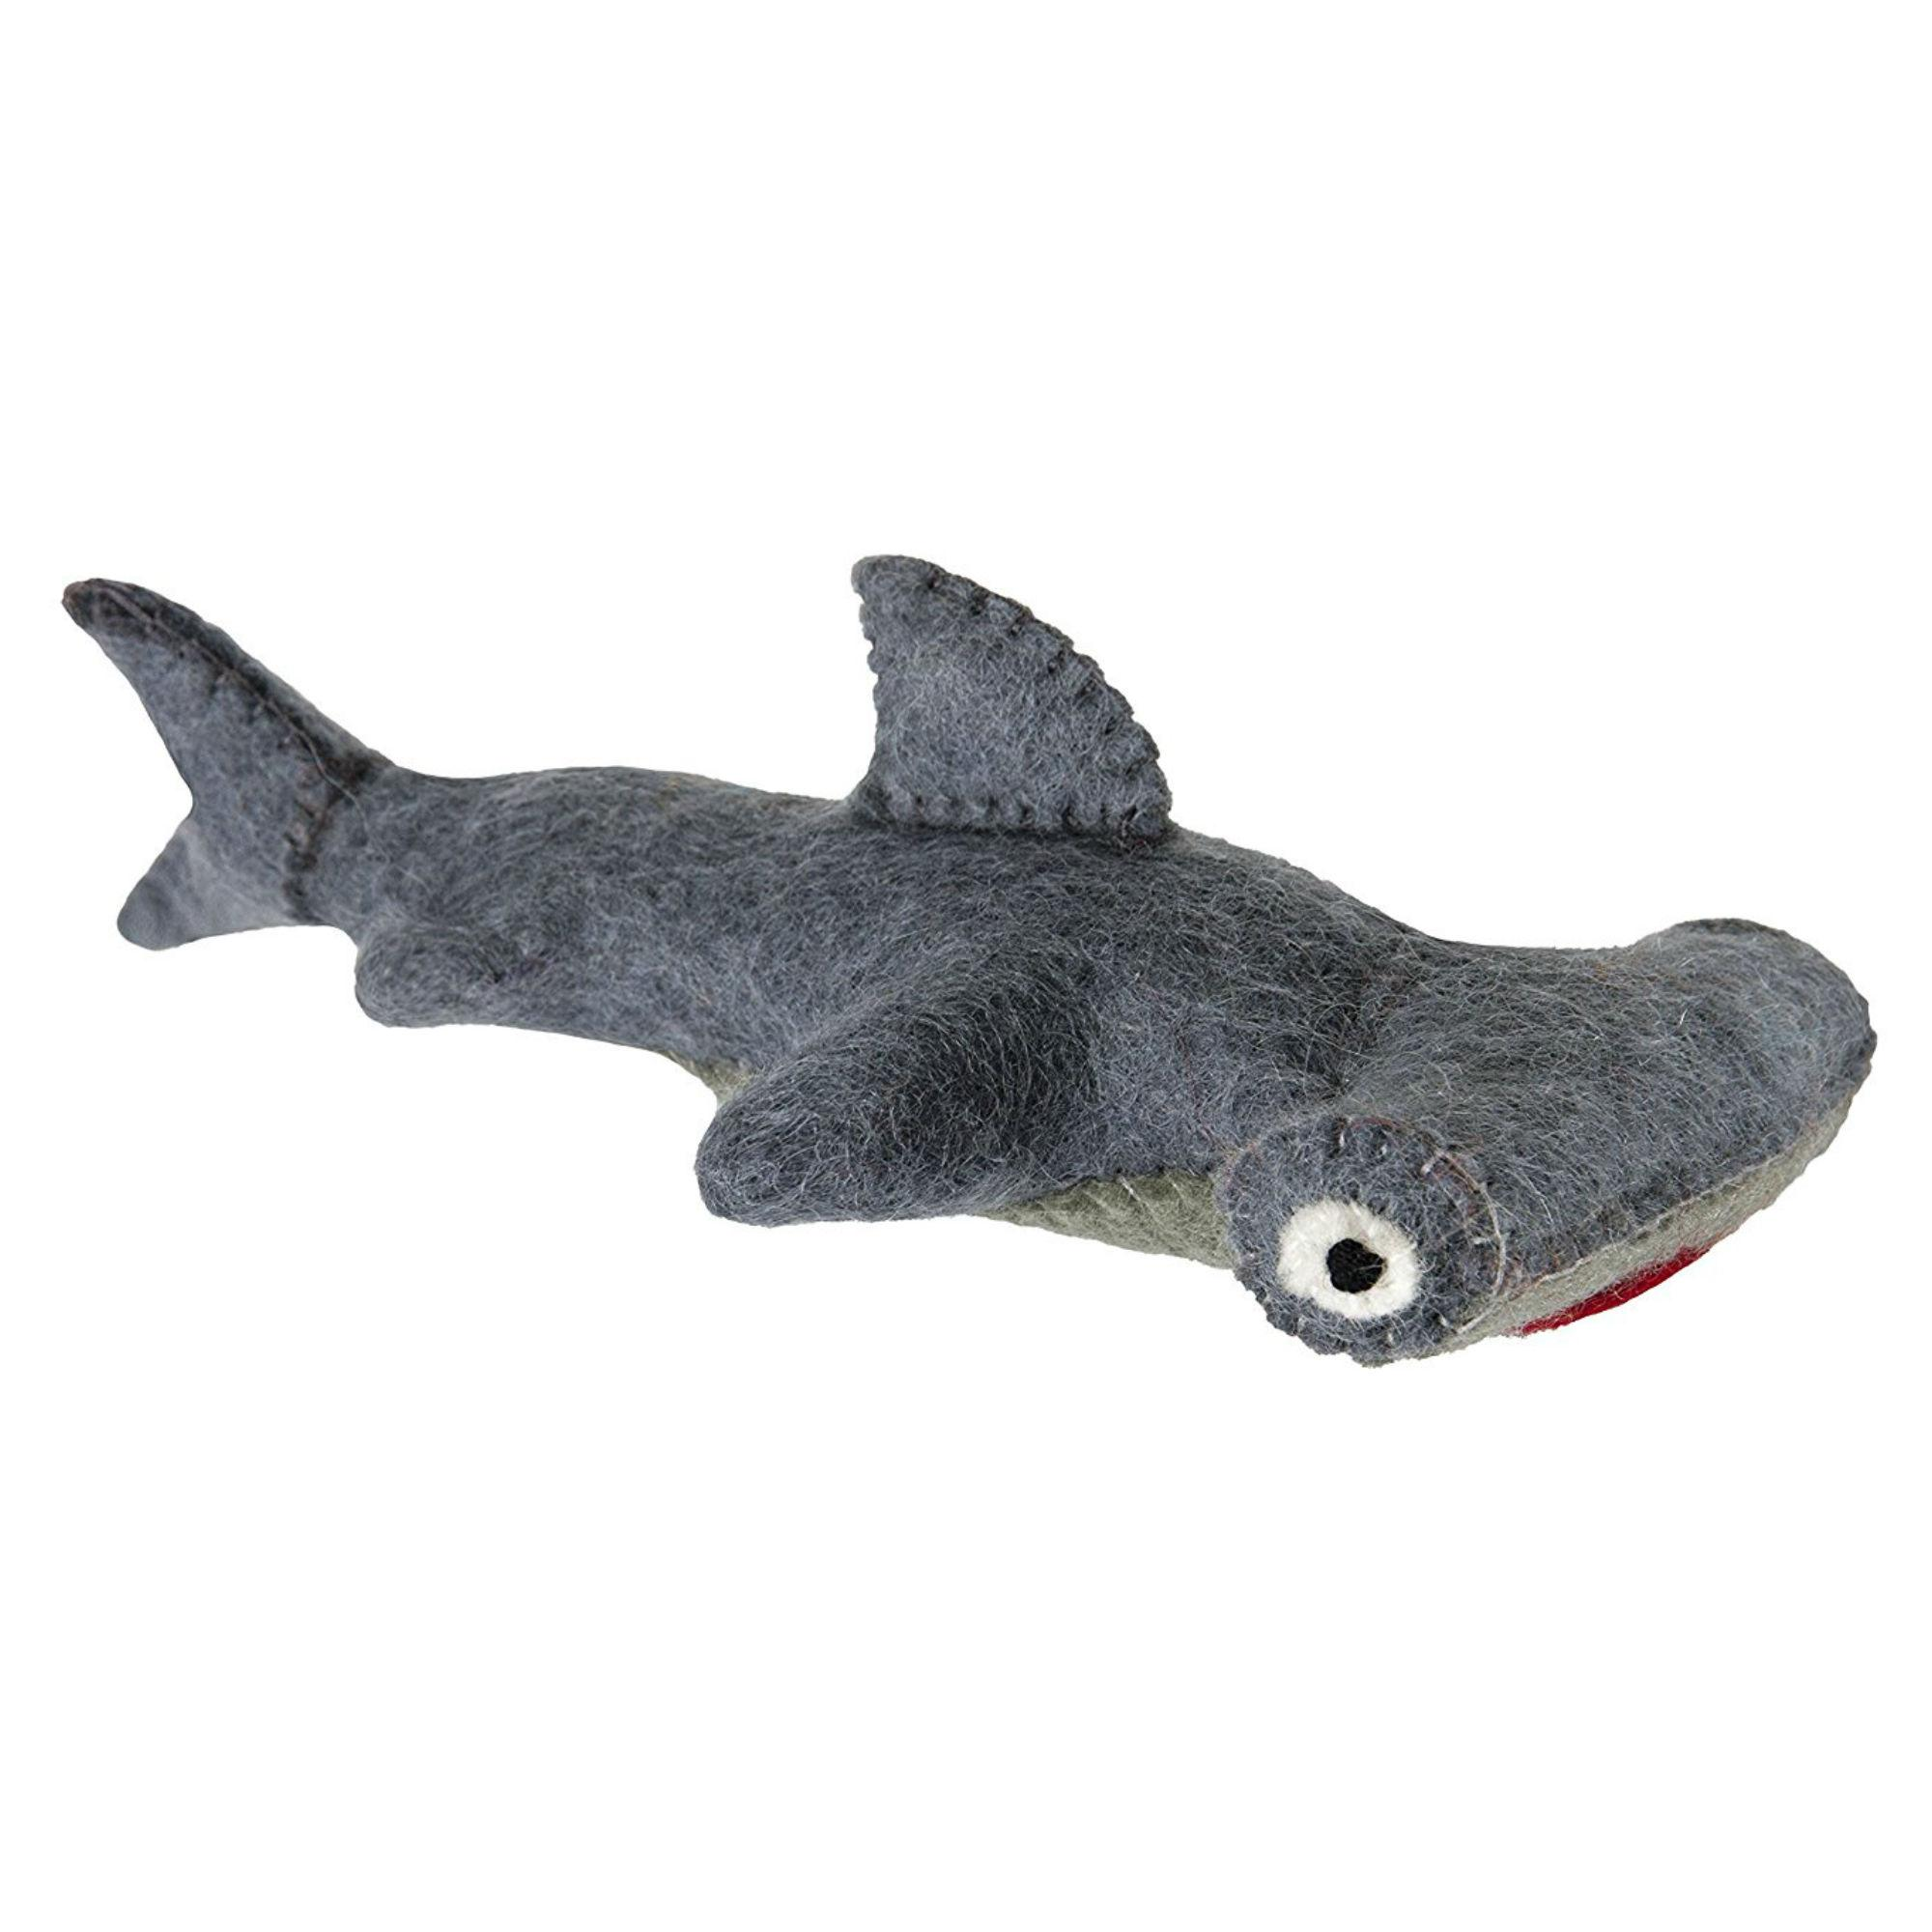 Wooly Wonkz Under The Sea Dog Toy - Hammerhead